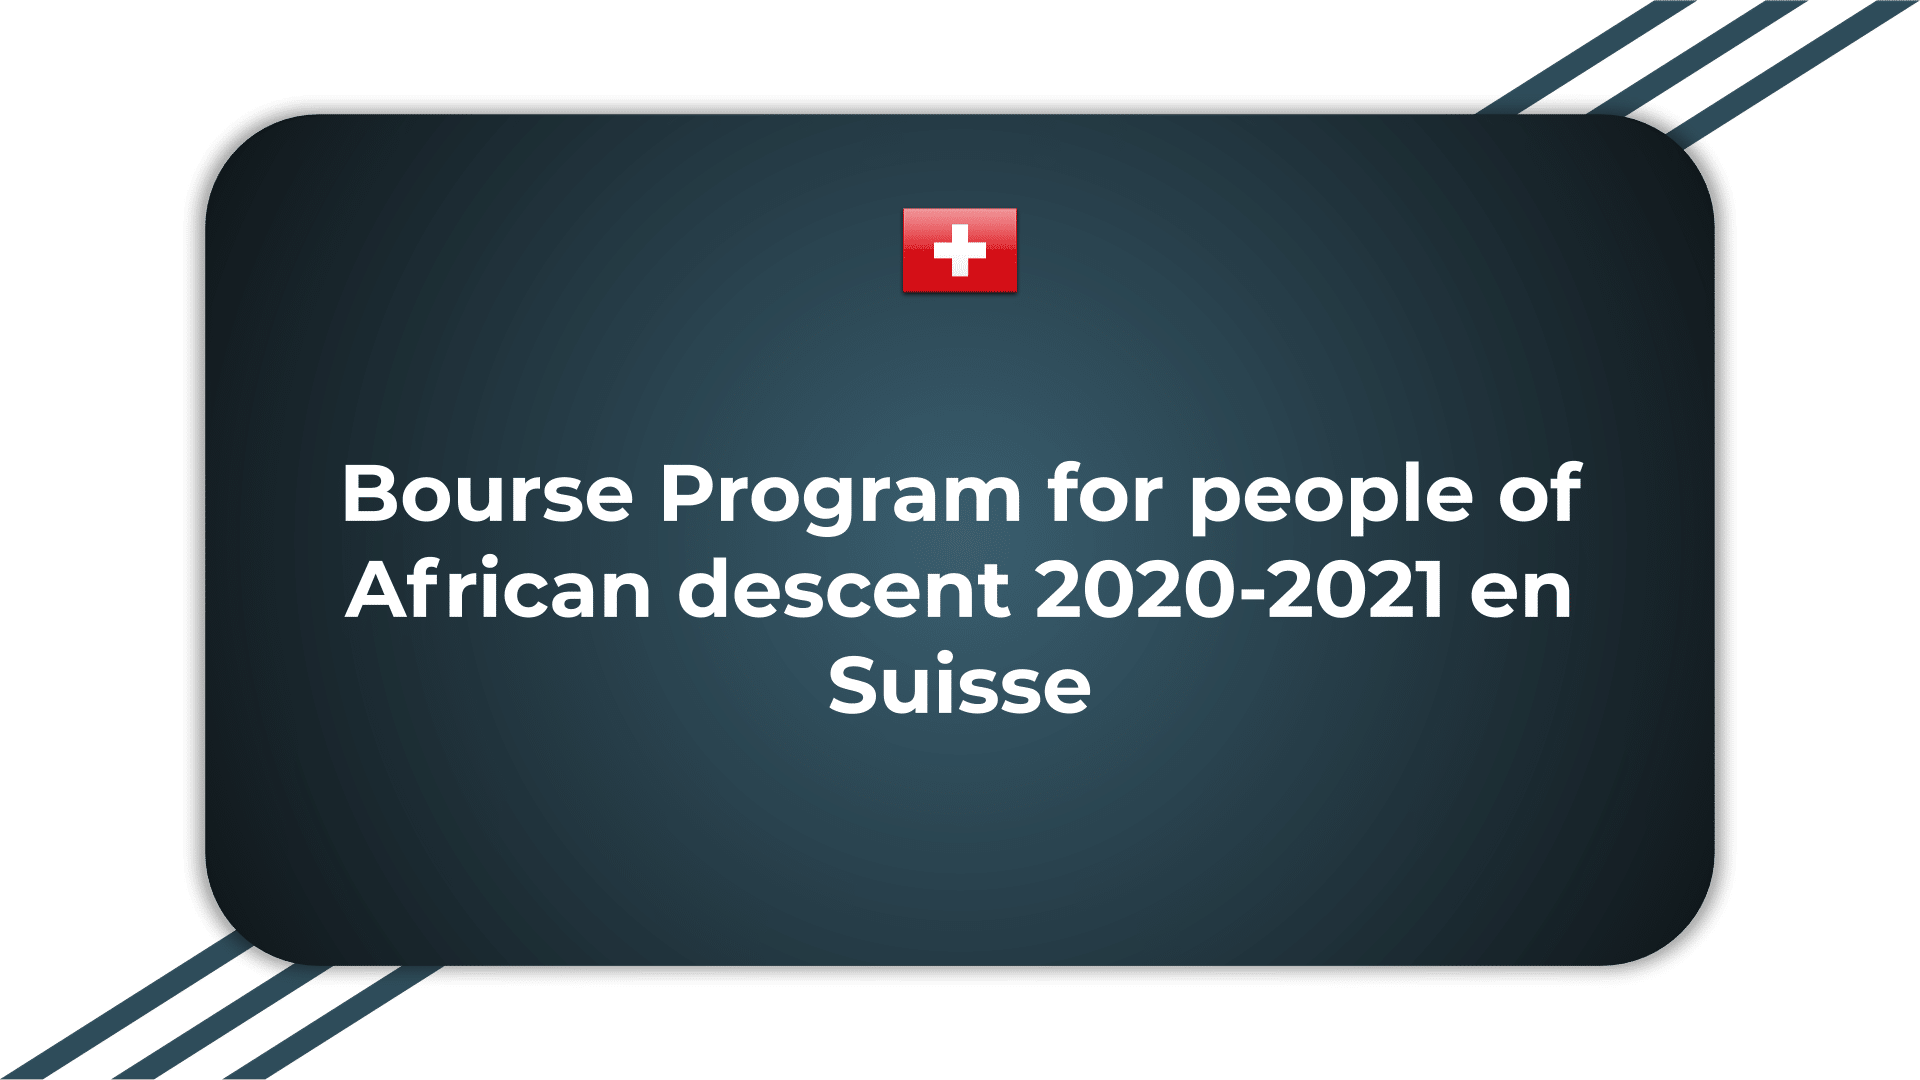 Bourse Program for people of African descent